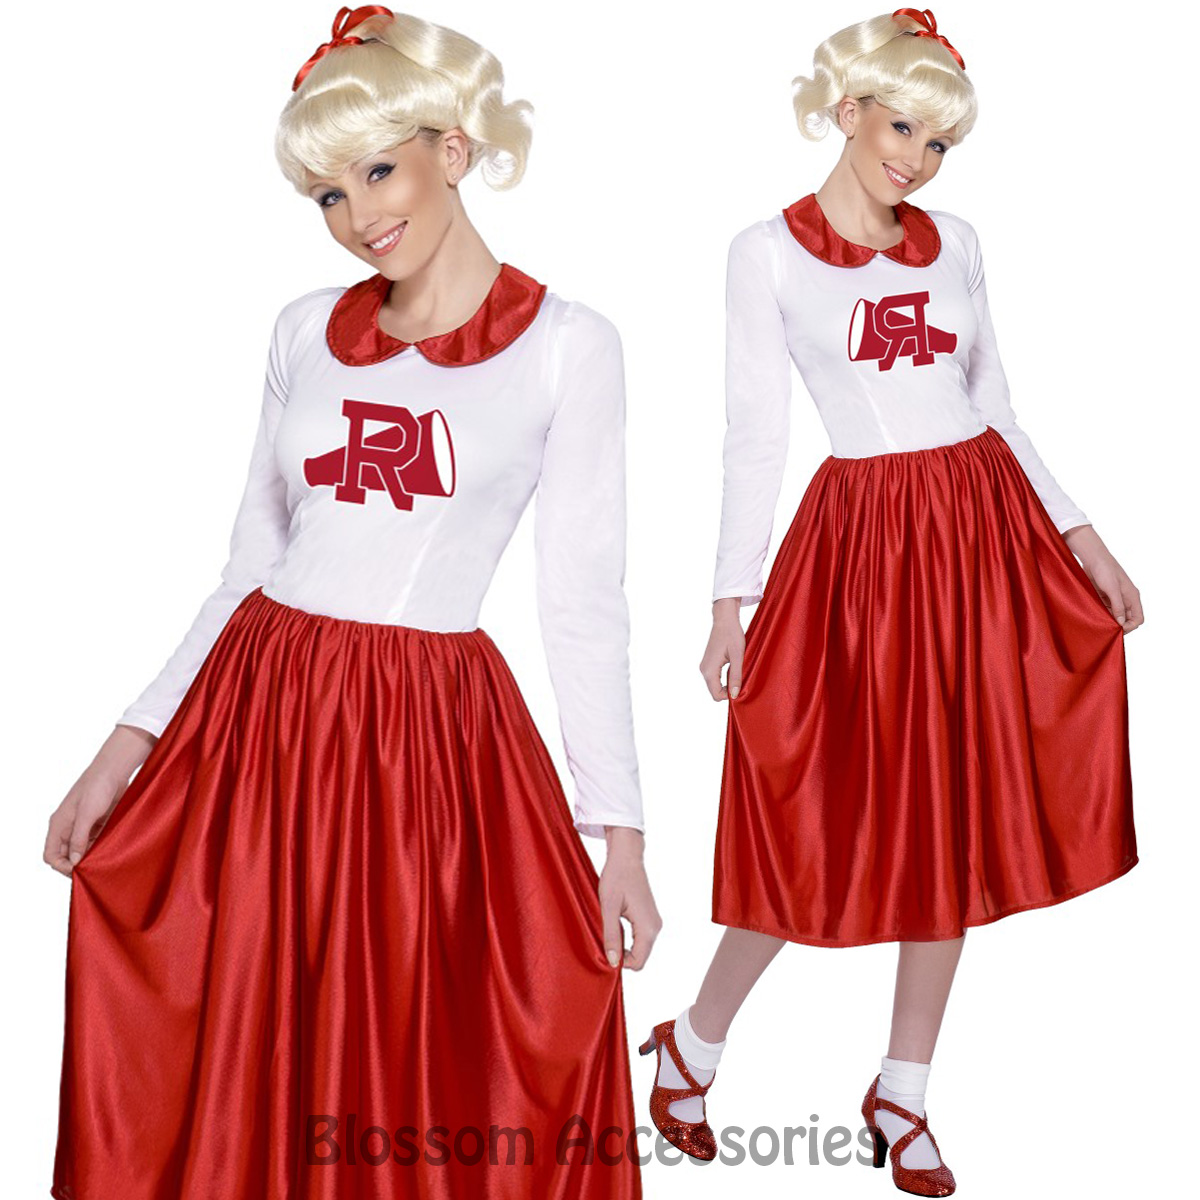 f46f70063101 Image Is Loading CL713-Grease-Sandy-Costume-Licensed-50s-Rydell-High- Sc 1  St EBay